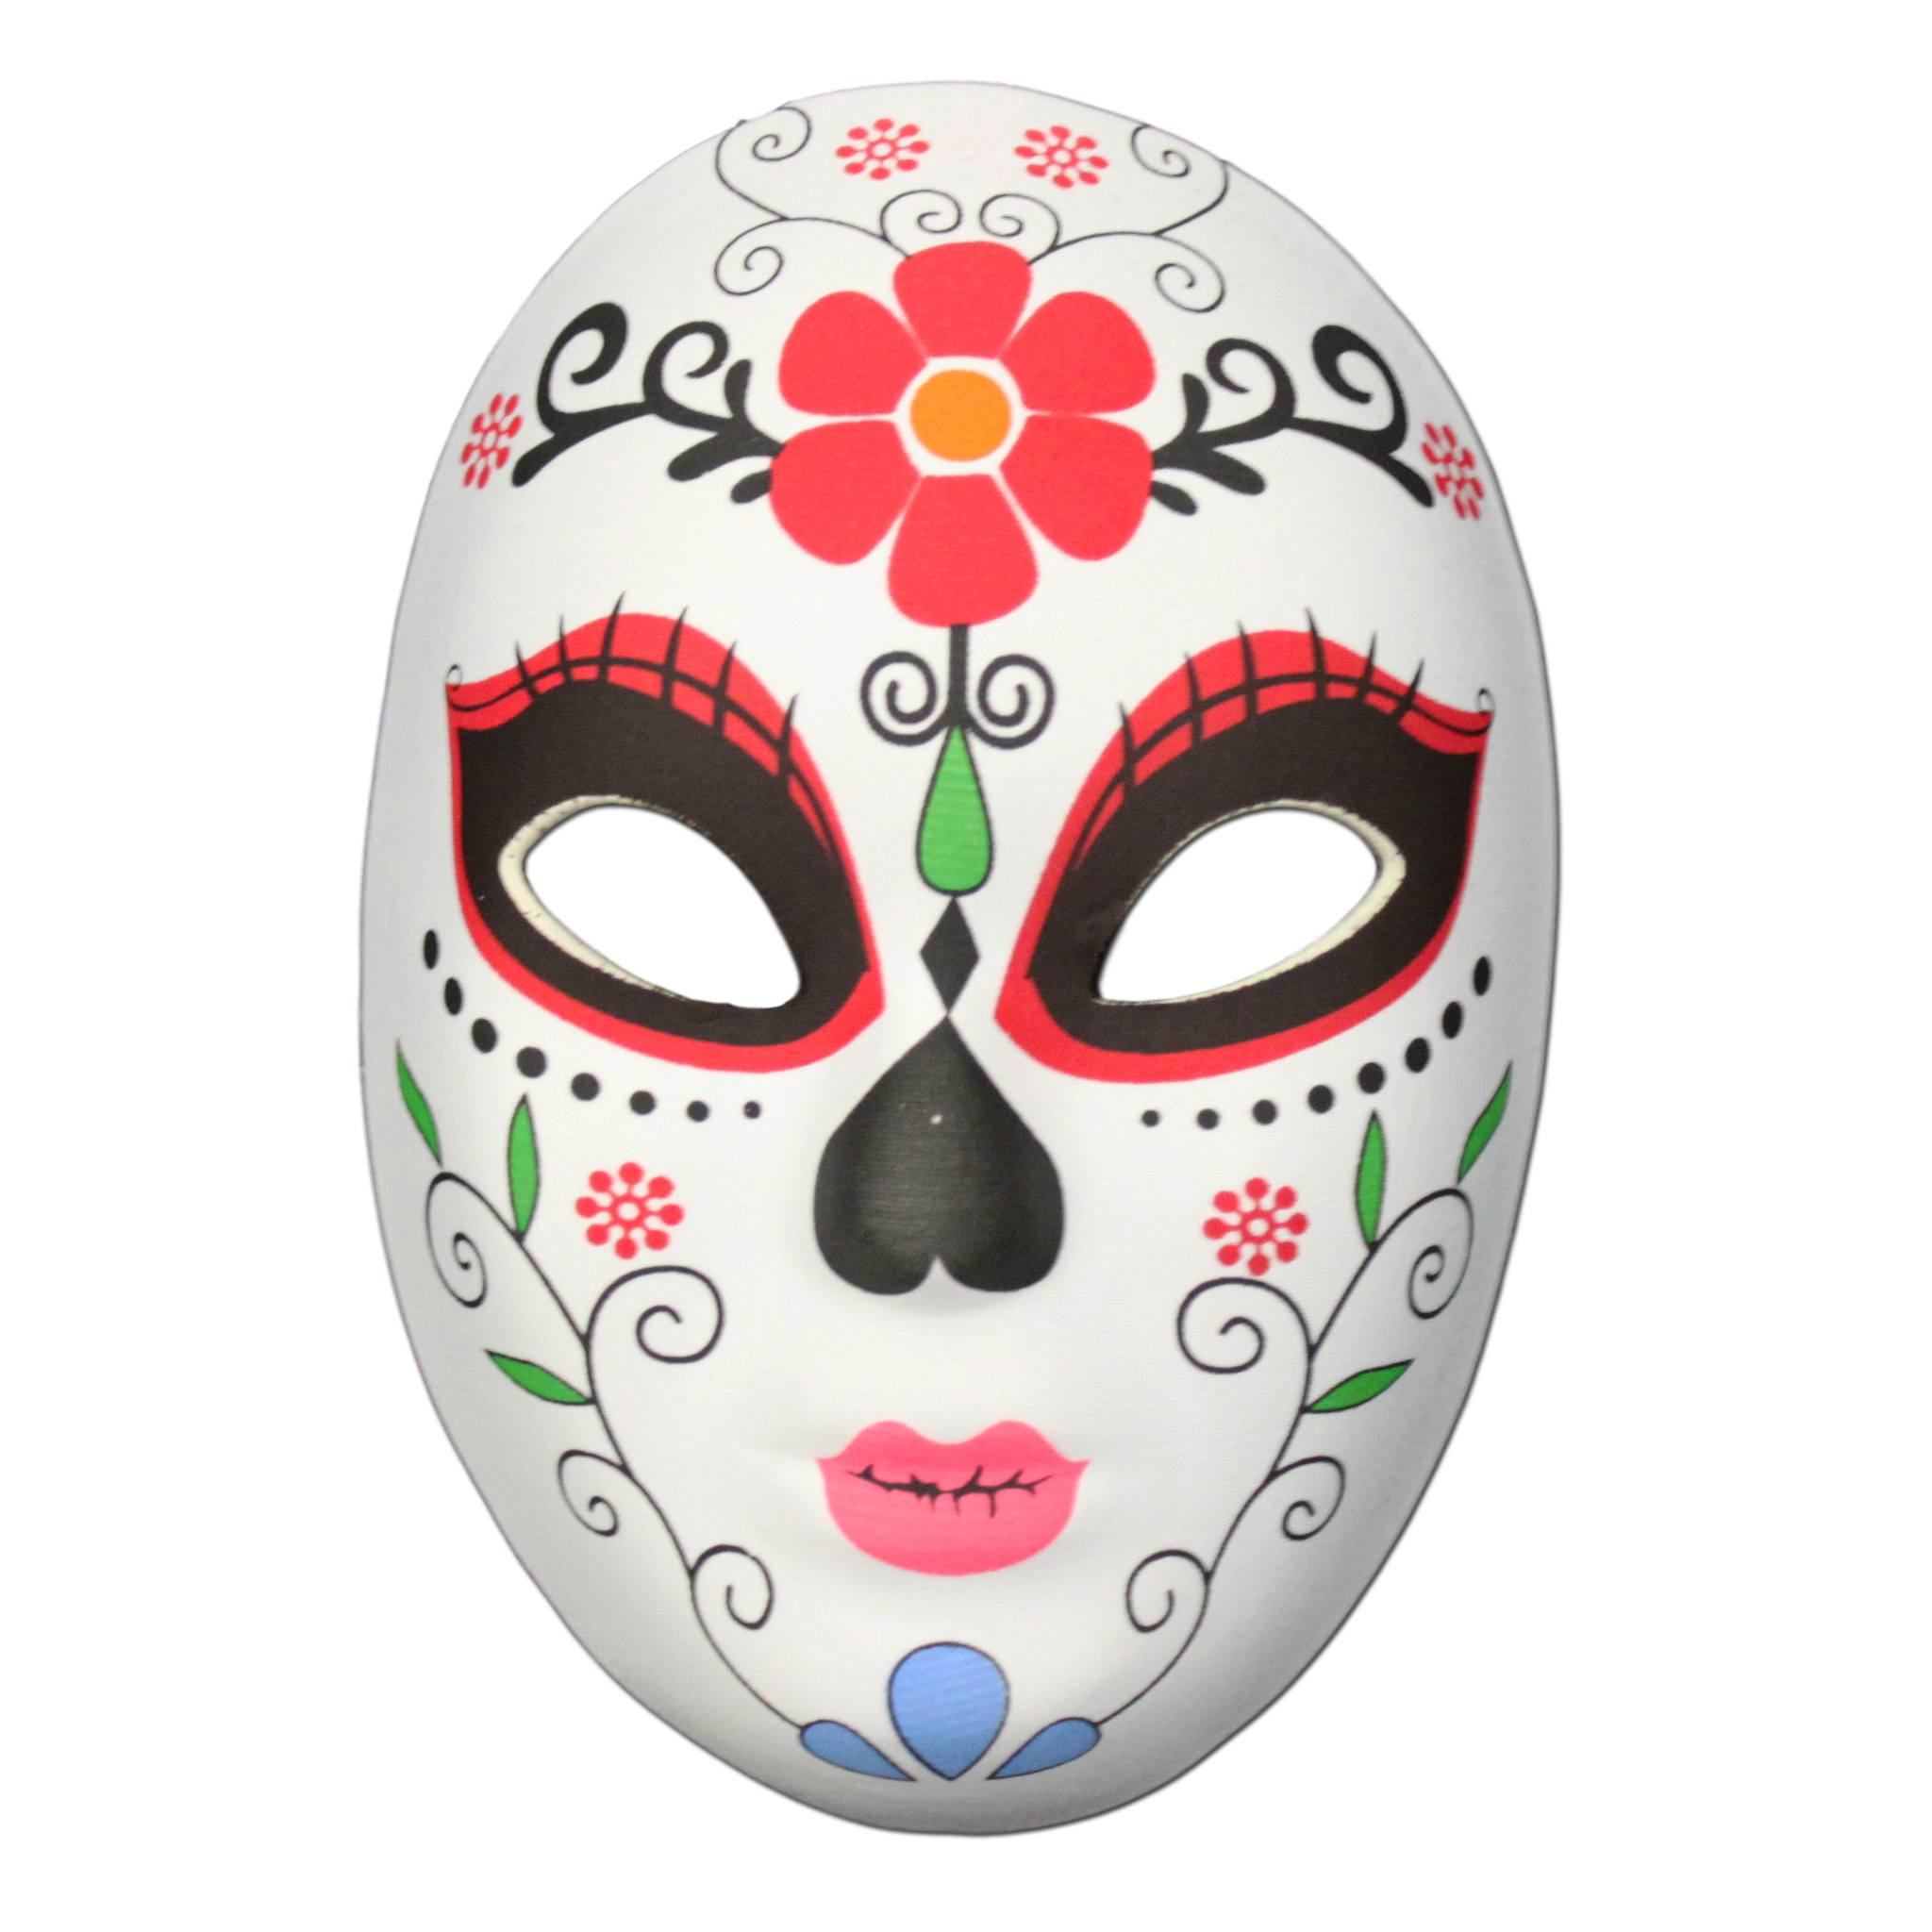 Shop For Day Of The Dead Masquerade Masks At Simply Party Supplies